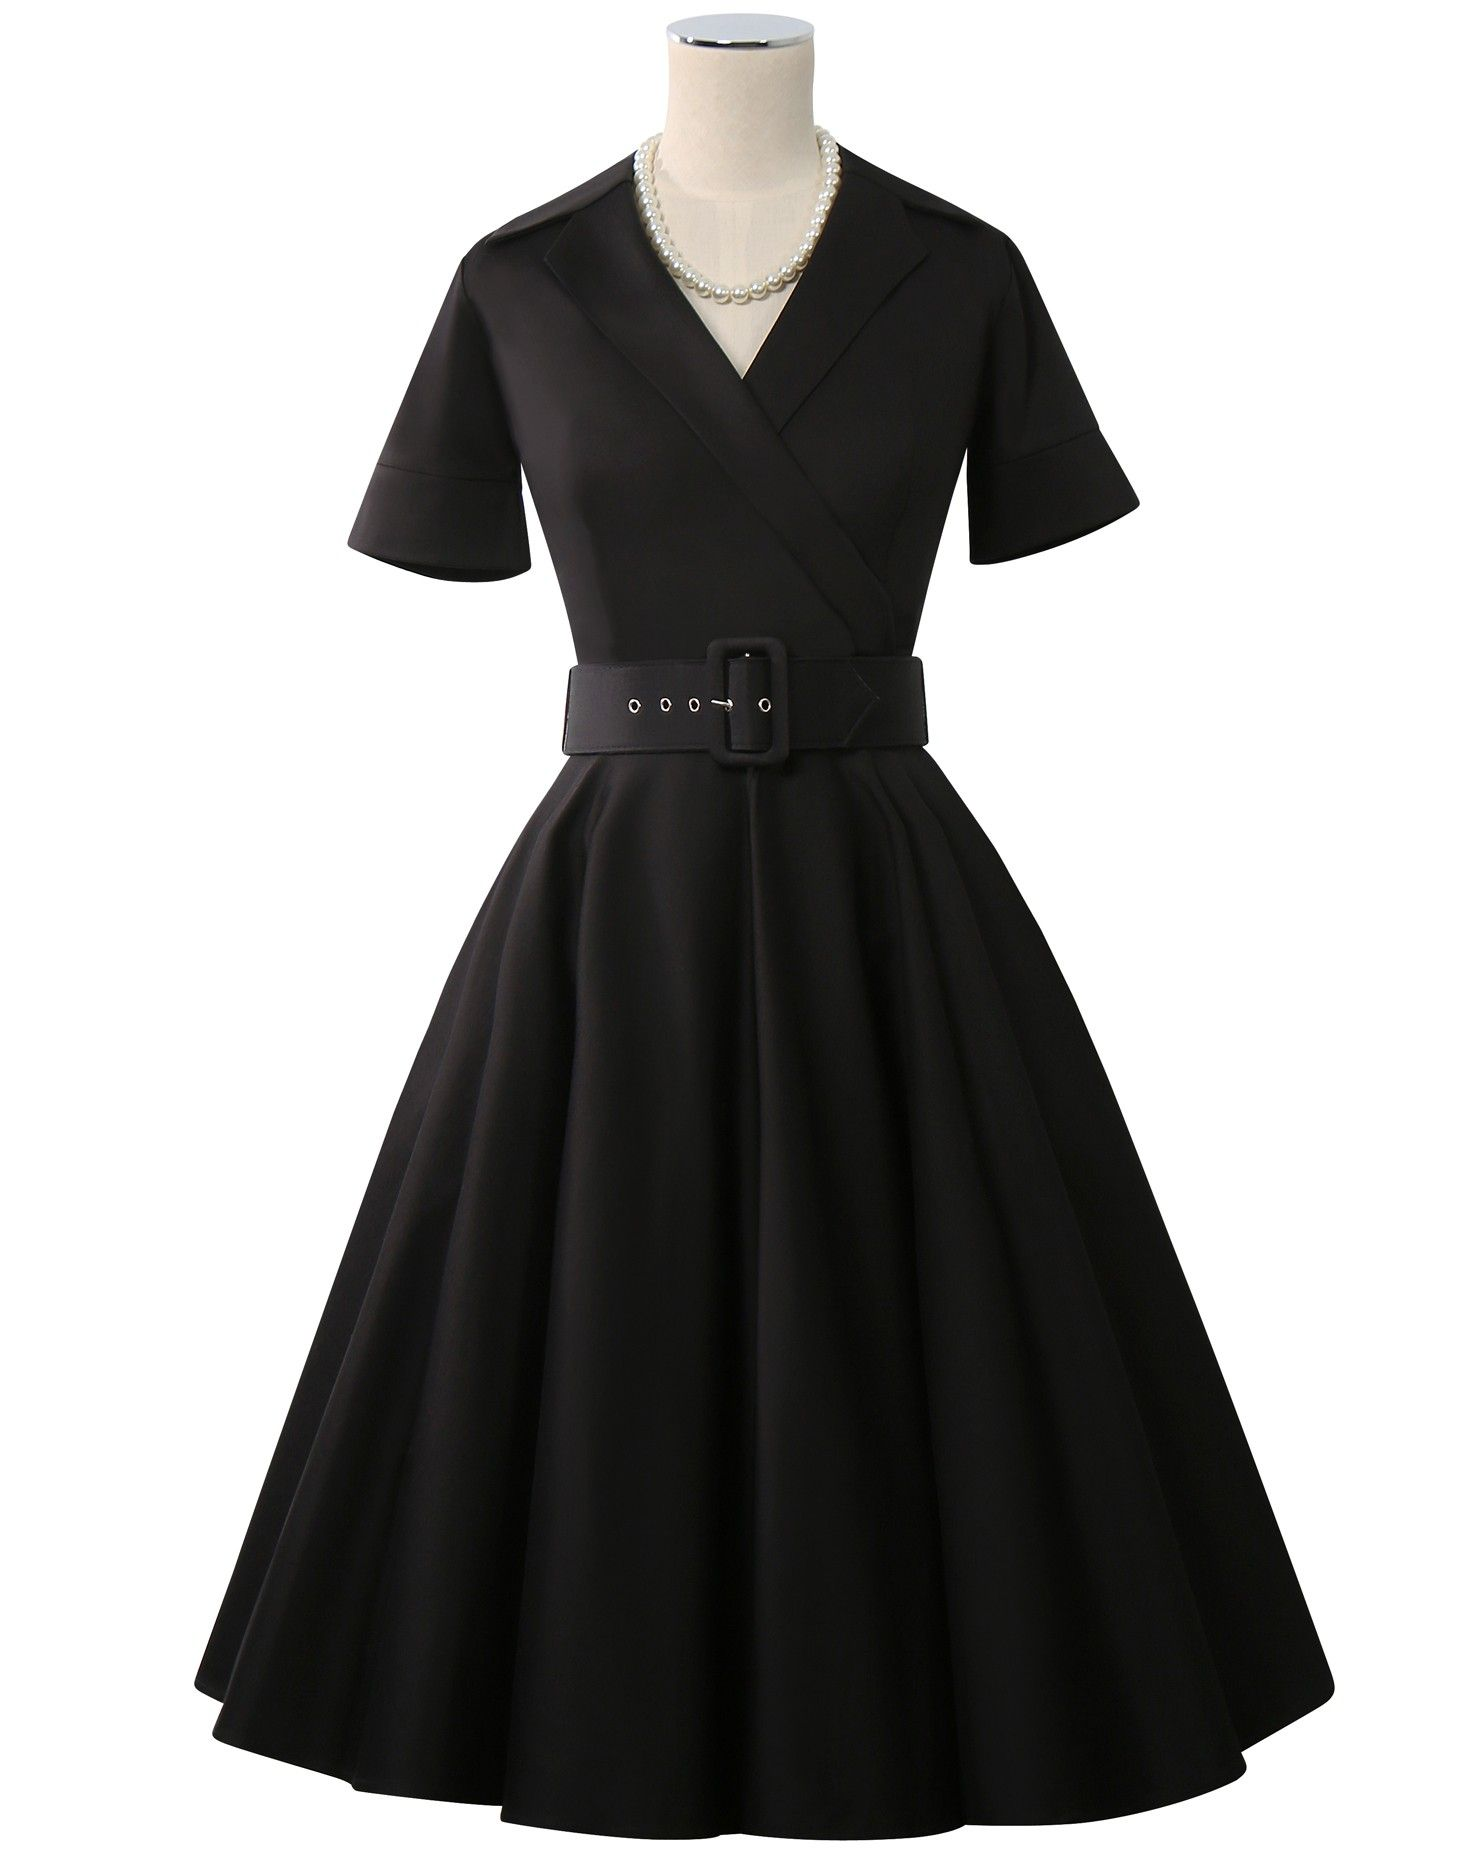 Duamour belted collar dress black retropinup pinterest